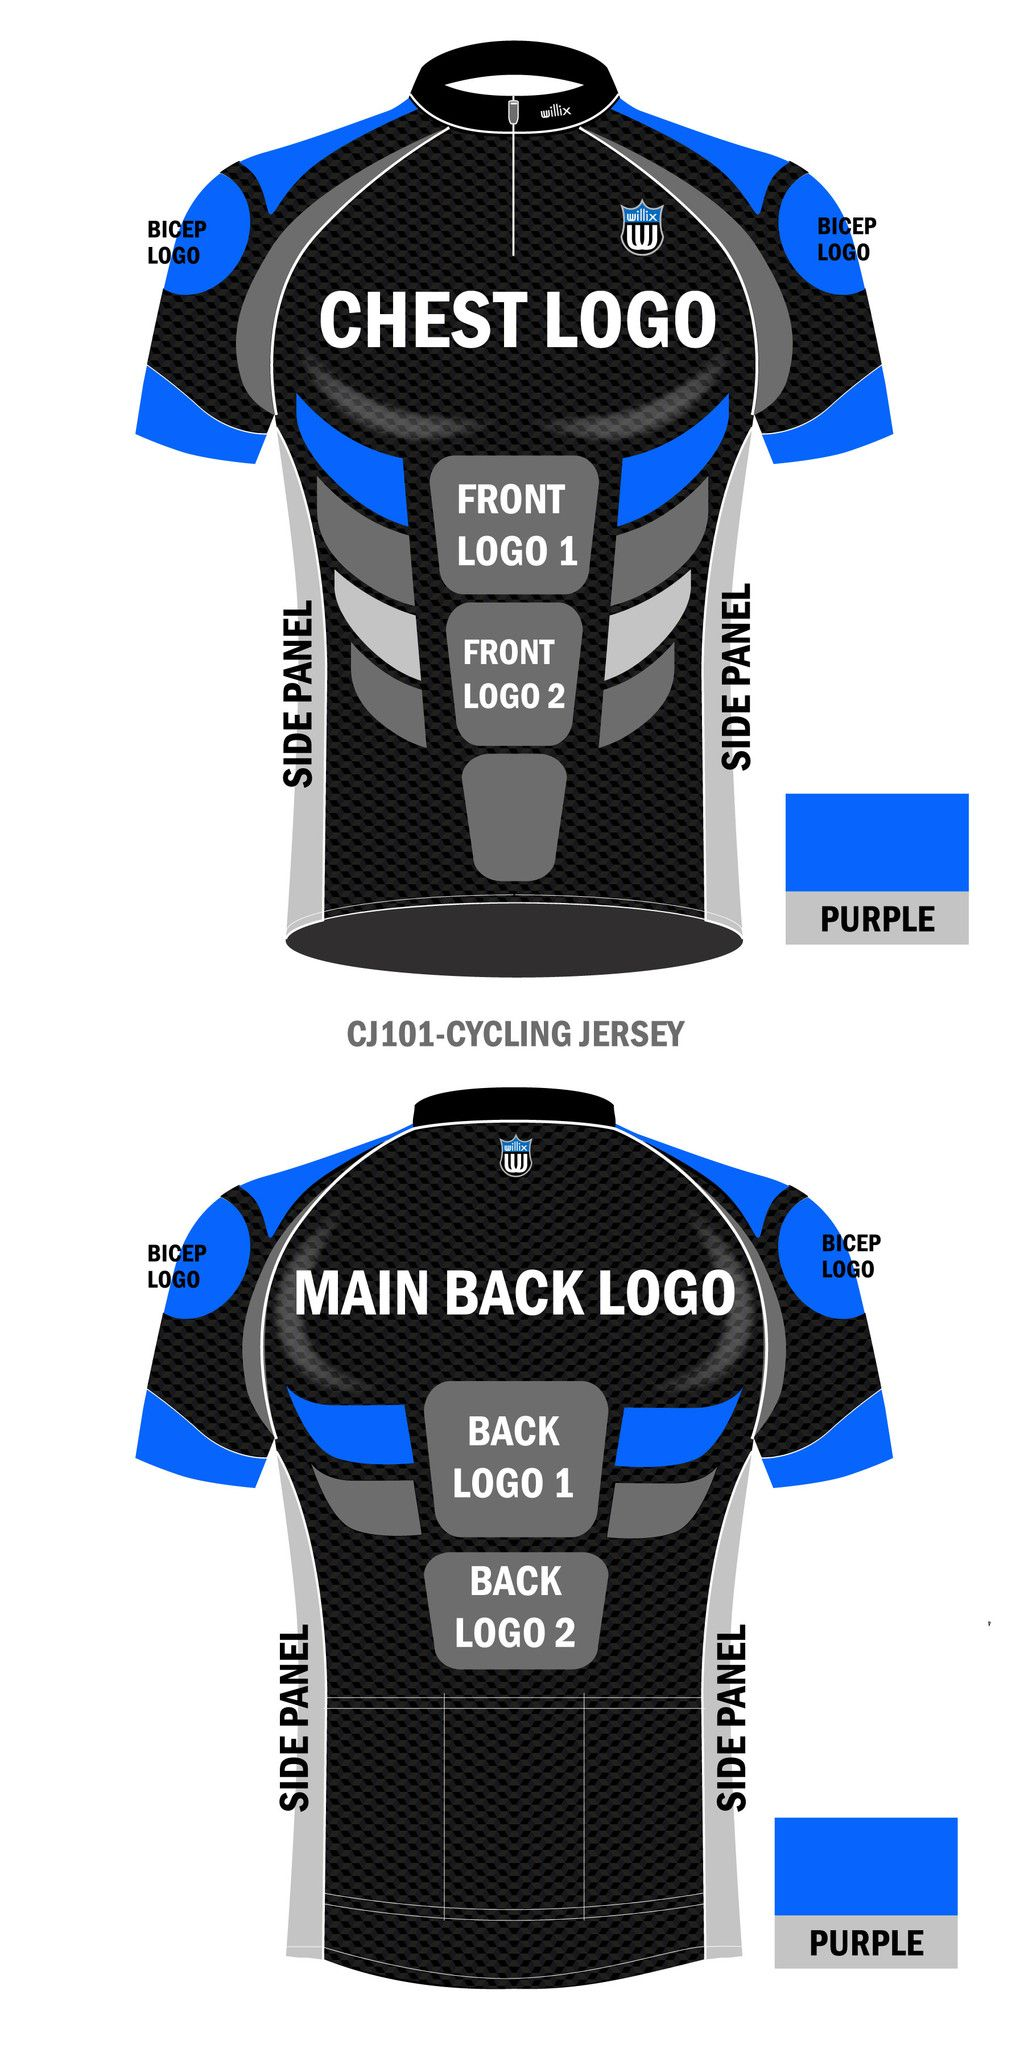 CJ101 - Cycling Jersey (1 to 5 pcs) – Willix Store  42a88c200